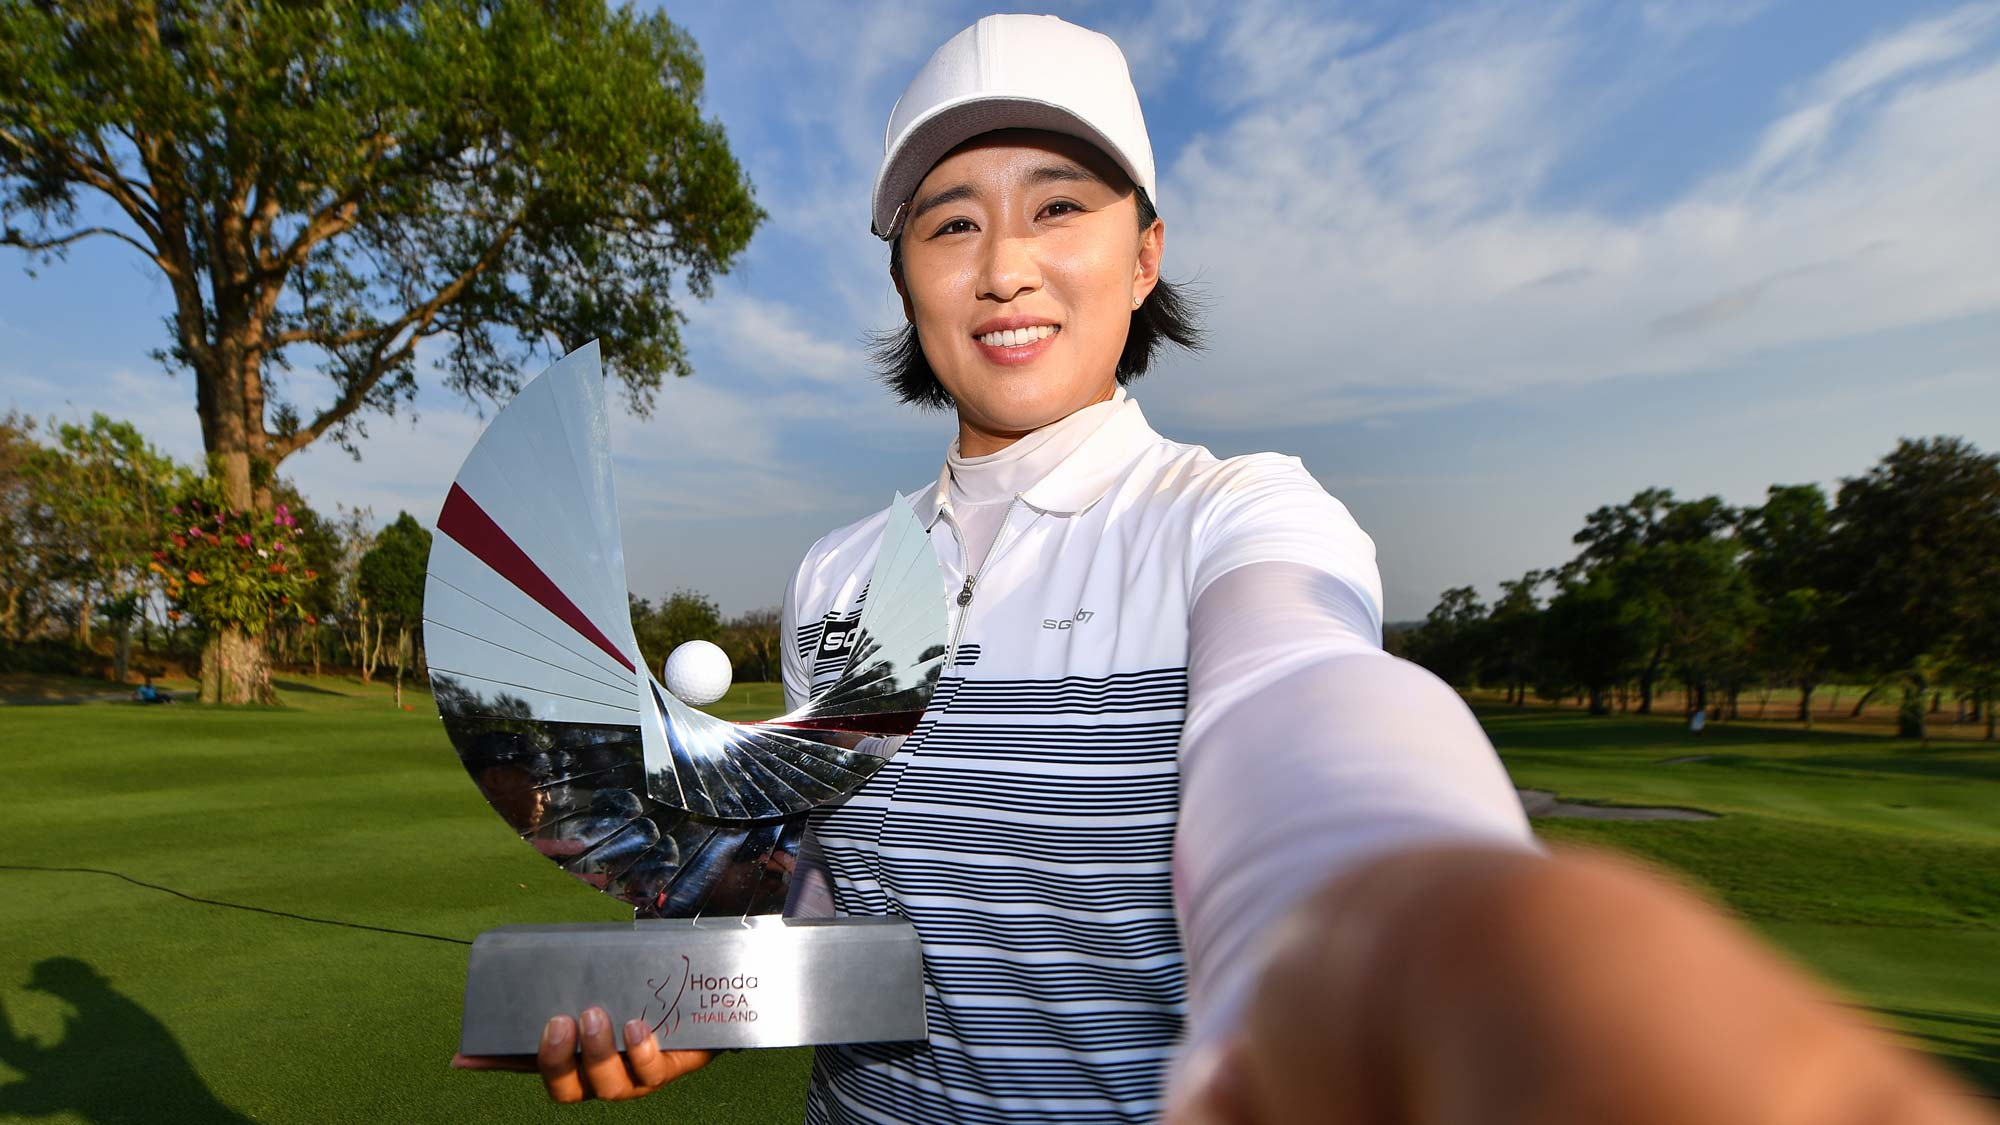 Amy Yang has her #BagsPacked for the 2020 Diamond Resorts Tournament of Champions presented by IOA after her victory at the Honda LPGA Thailand